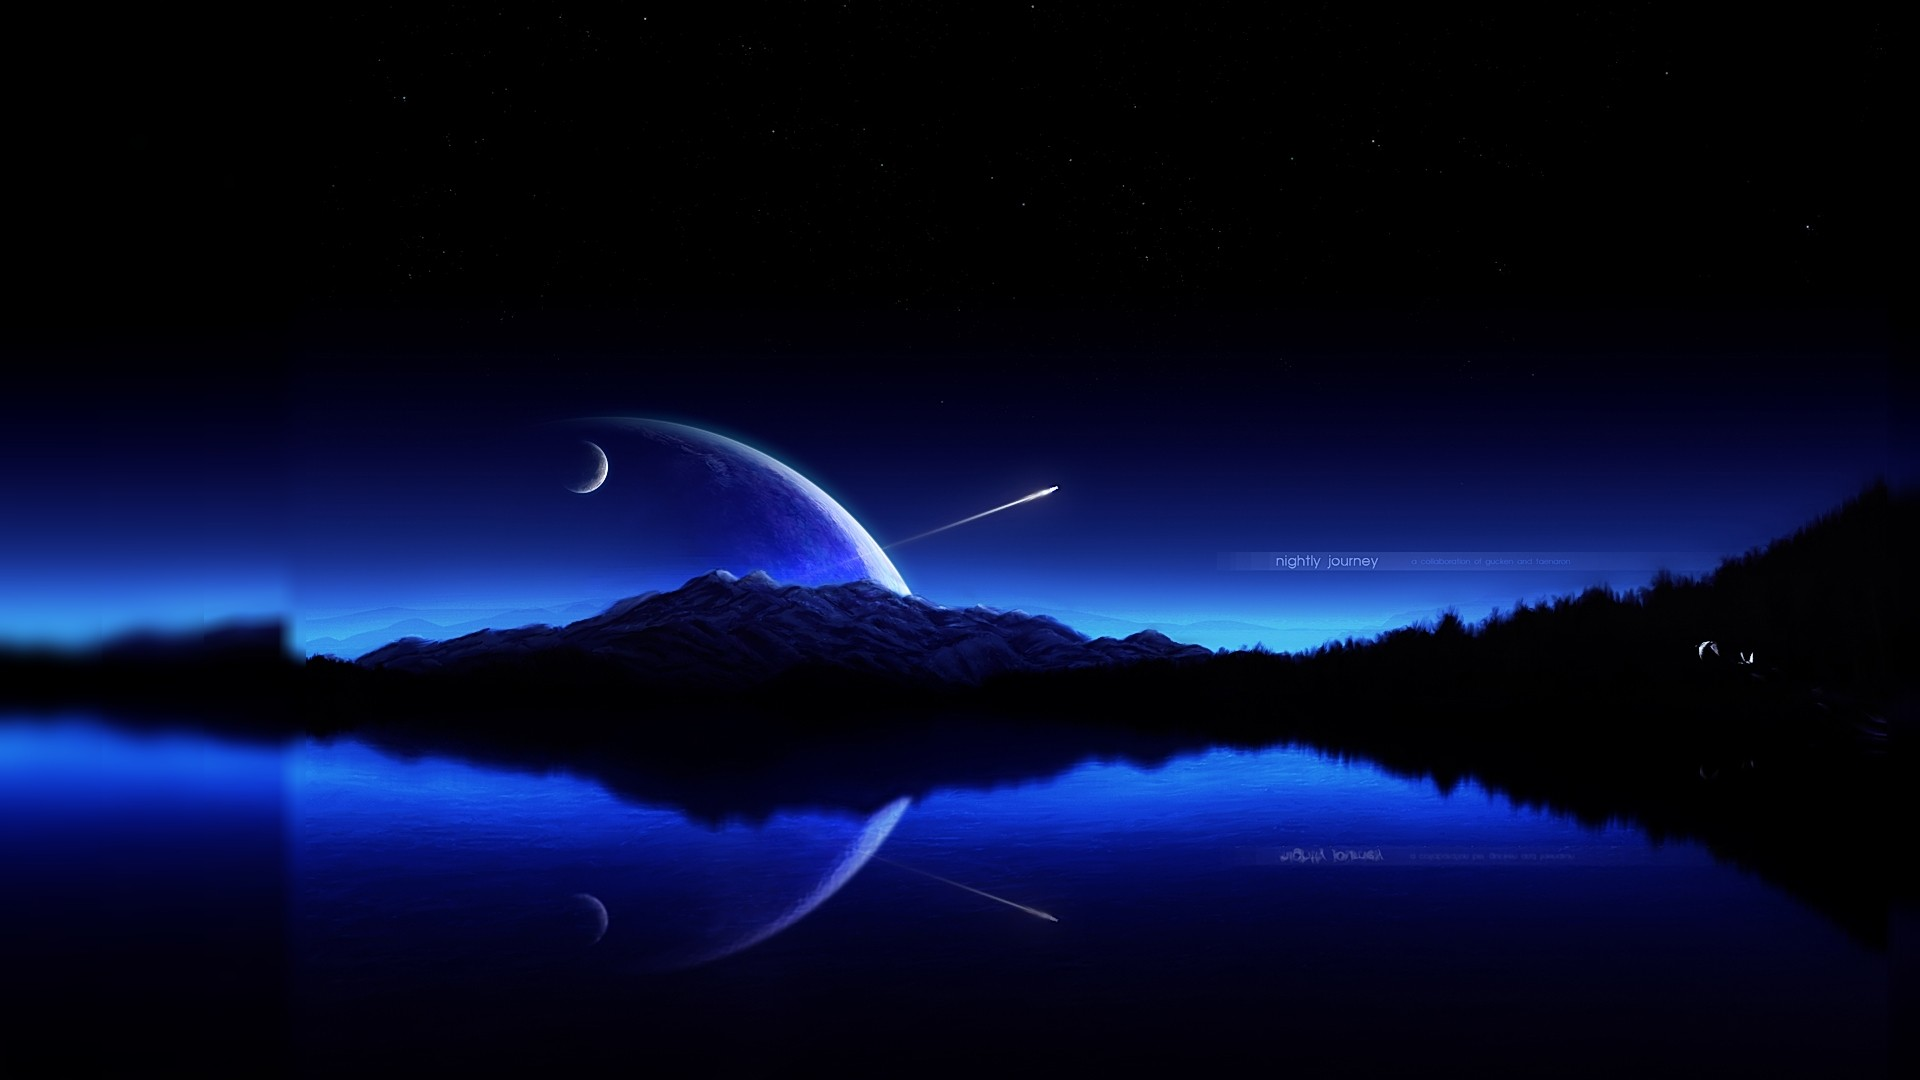 Free Download Download Blue Sky Shooting Star Hd Wallpaper